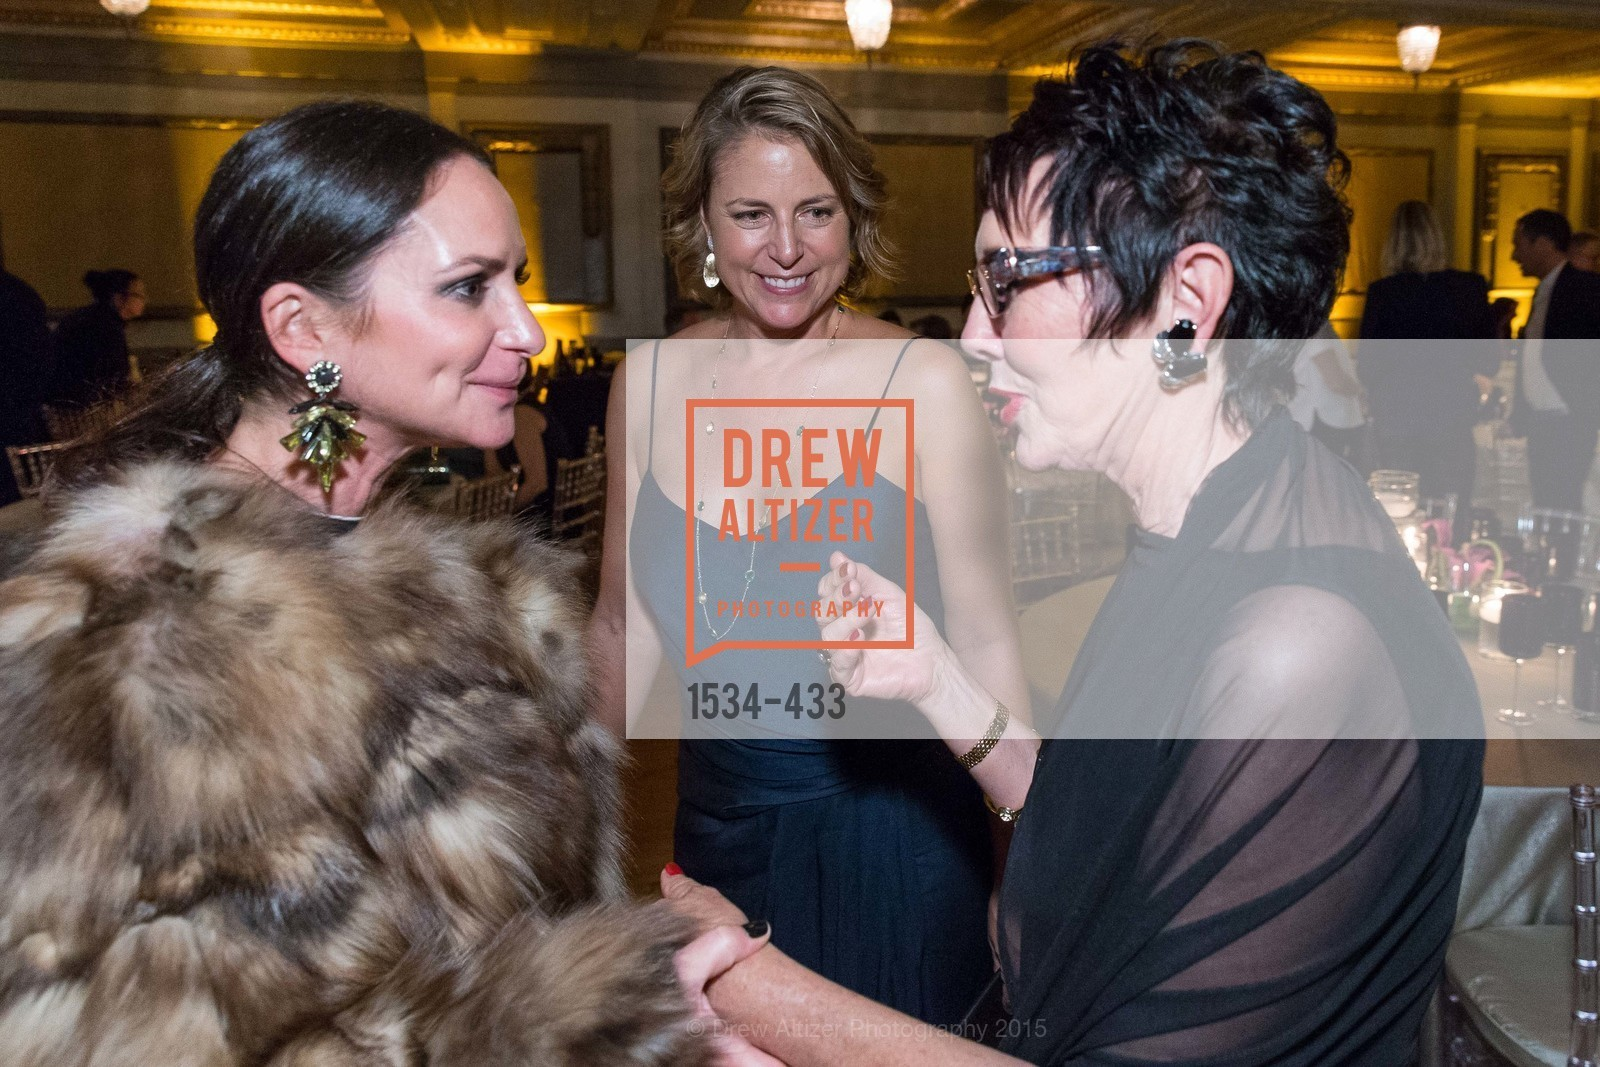 Courtney Dallaire, Genevieve Ferguson, Dianne Fong-Torres, SFMOMA Contemporary Vision Award, Regency Ballroom. 1300 Van Ness, November 3rd, 2015,Drew Altizer, Drew Altizer Photography, full-service agency, private events, San Francisco photographer, photographer california